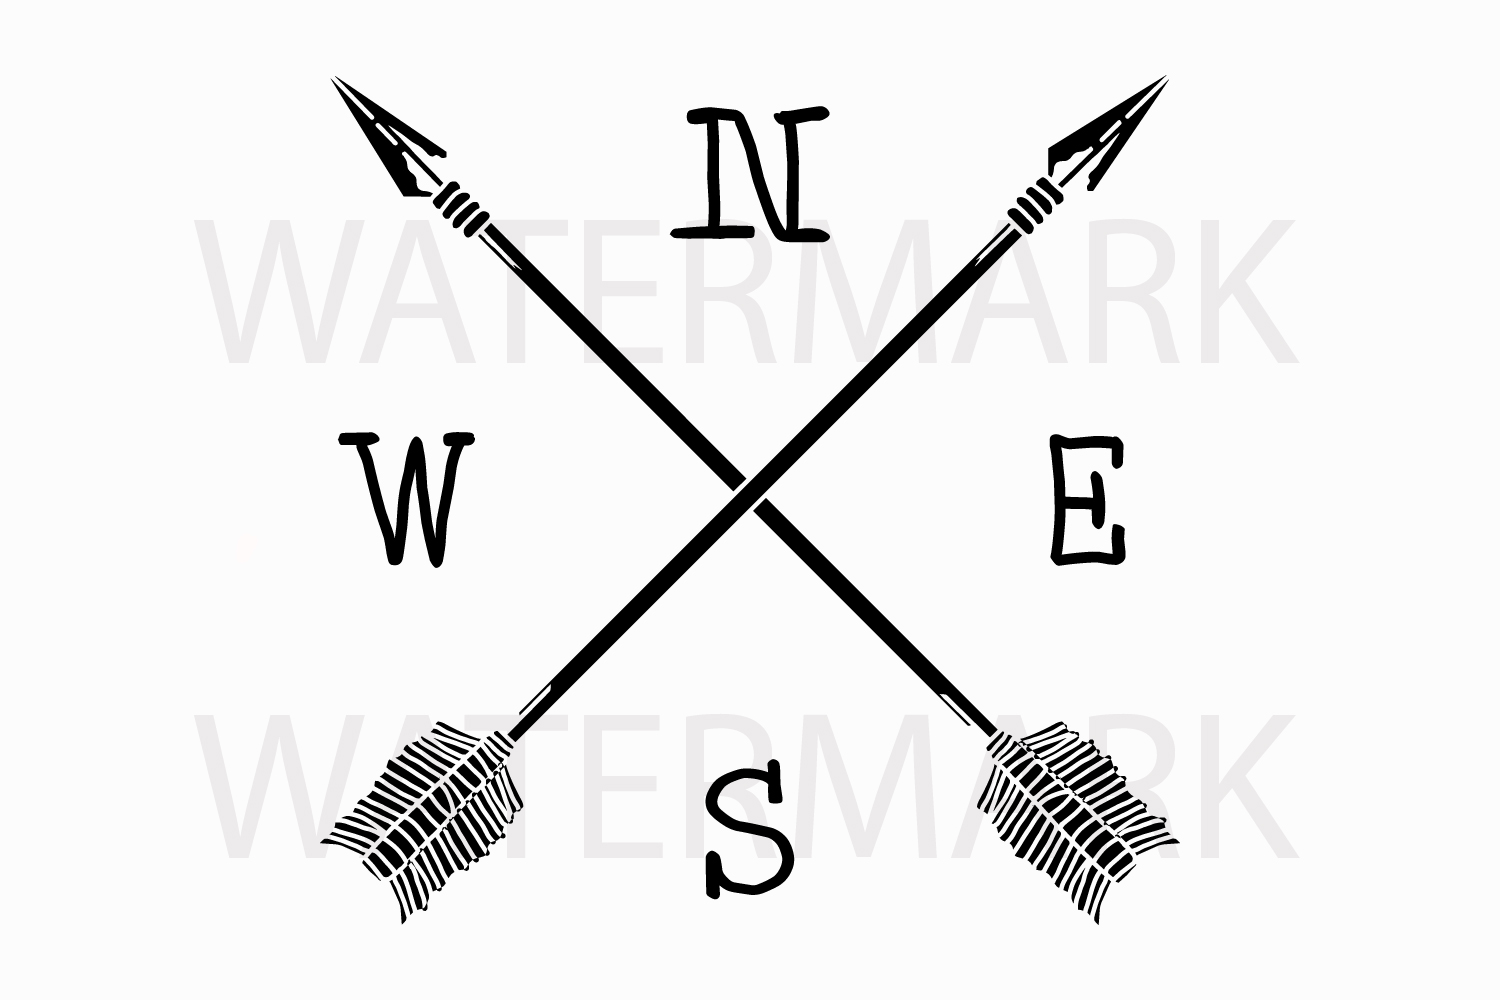 Two Arrow with N W E S - SVG/JPG/PNG Hand Drawing example image 1